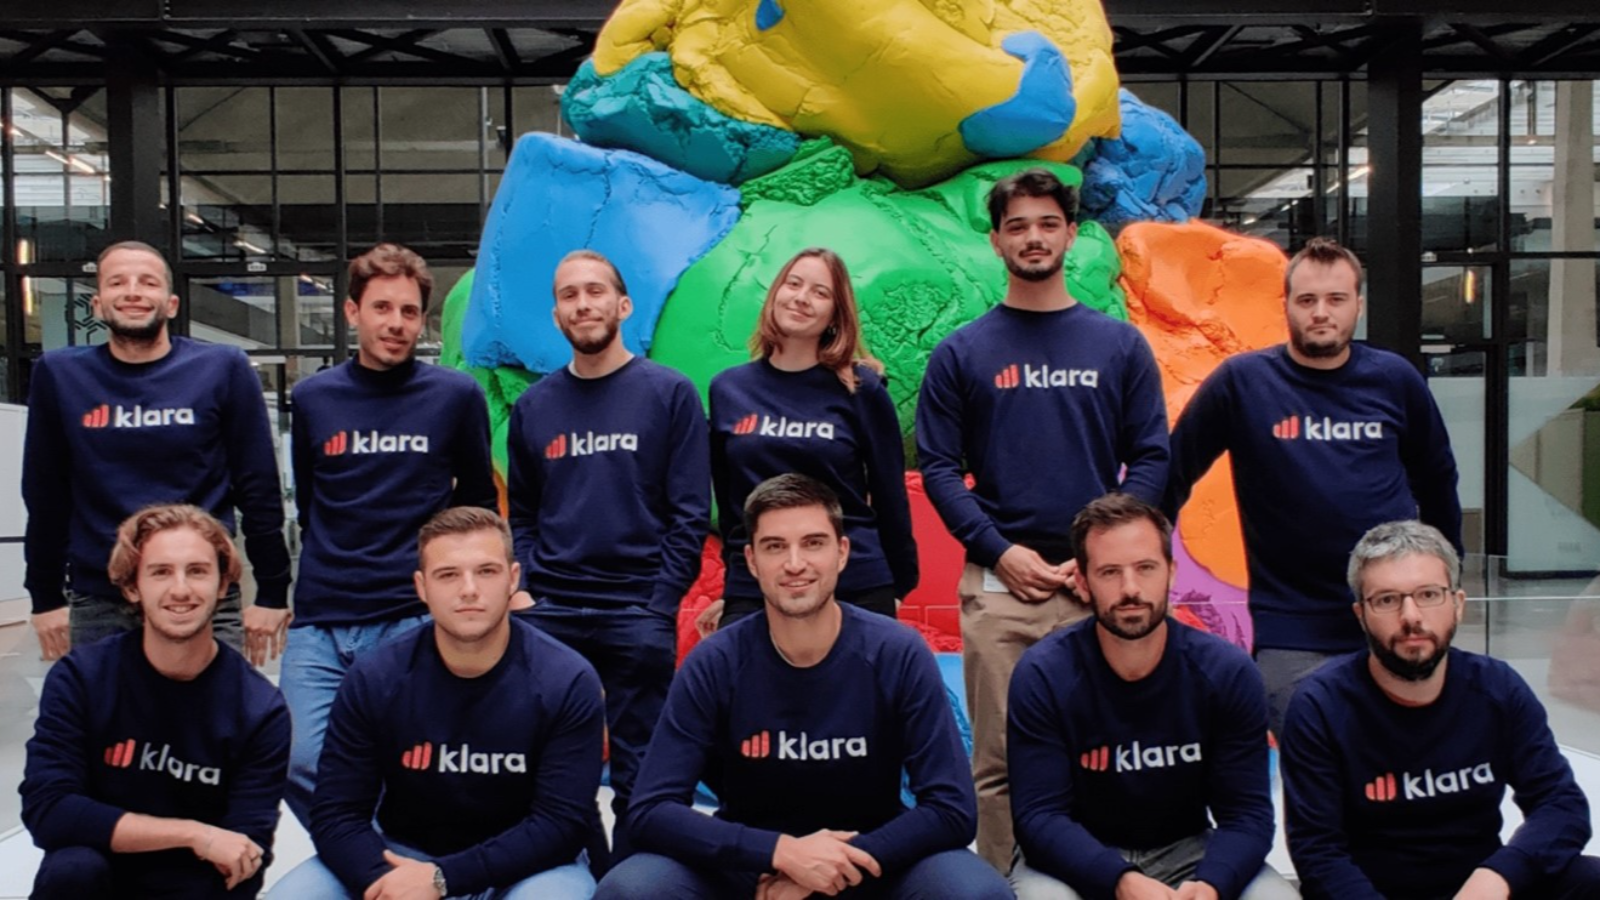 Thumbnail for news article called Klara (Founders Program) raises 1,2M€ to digitize collaborator's experience